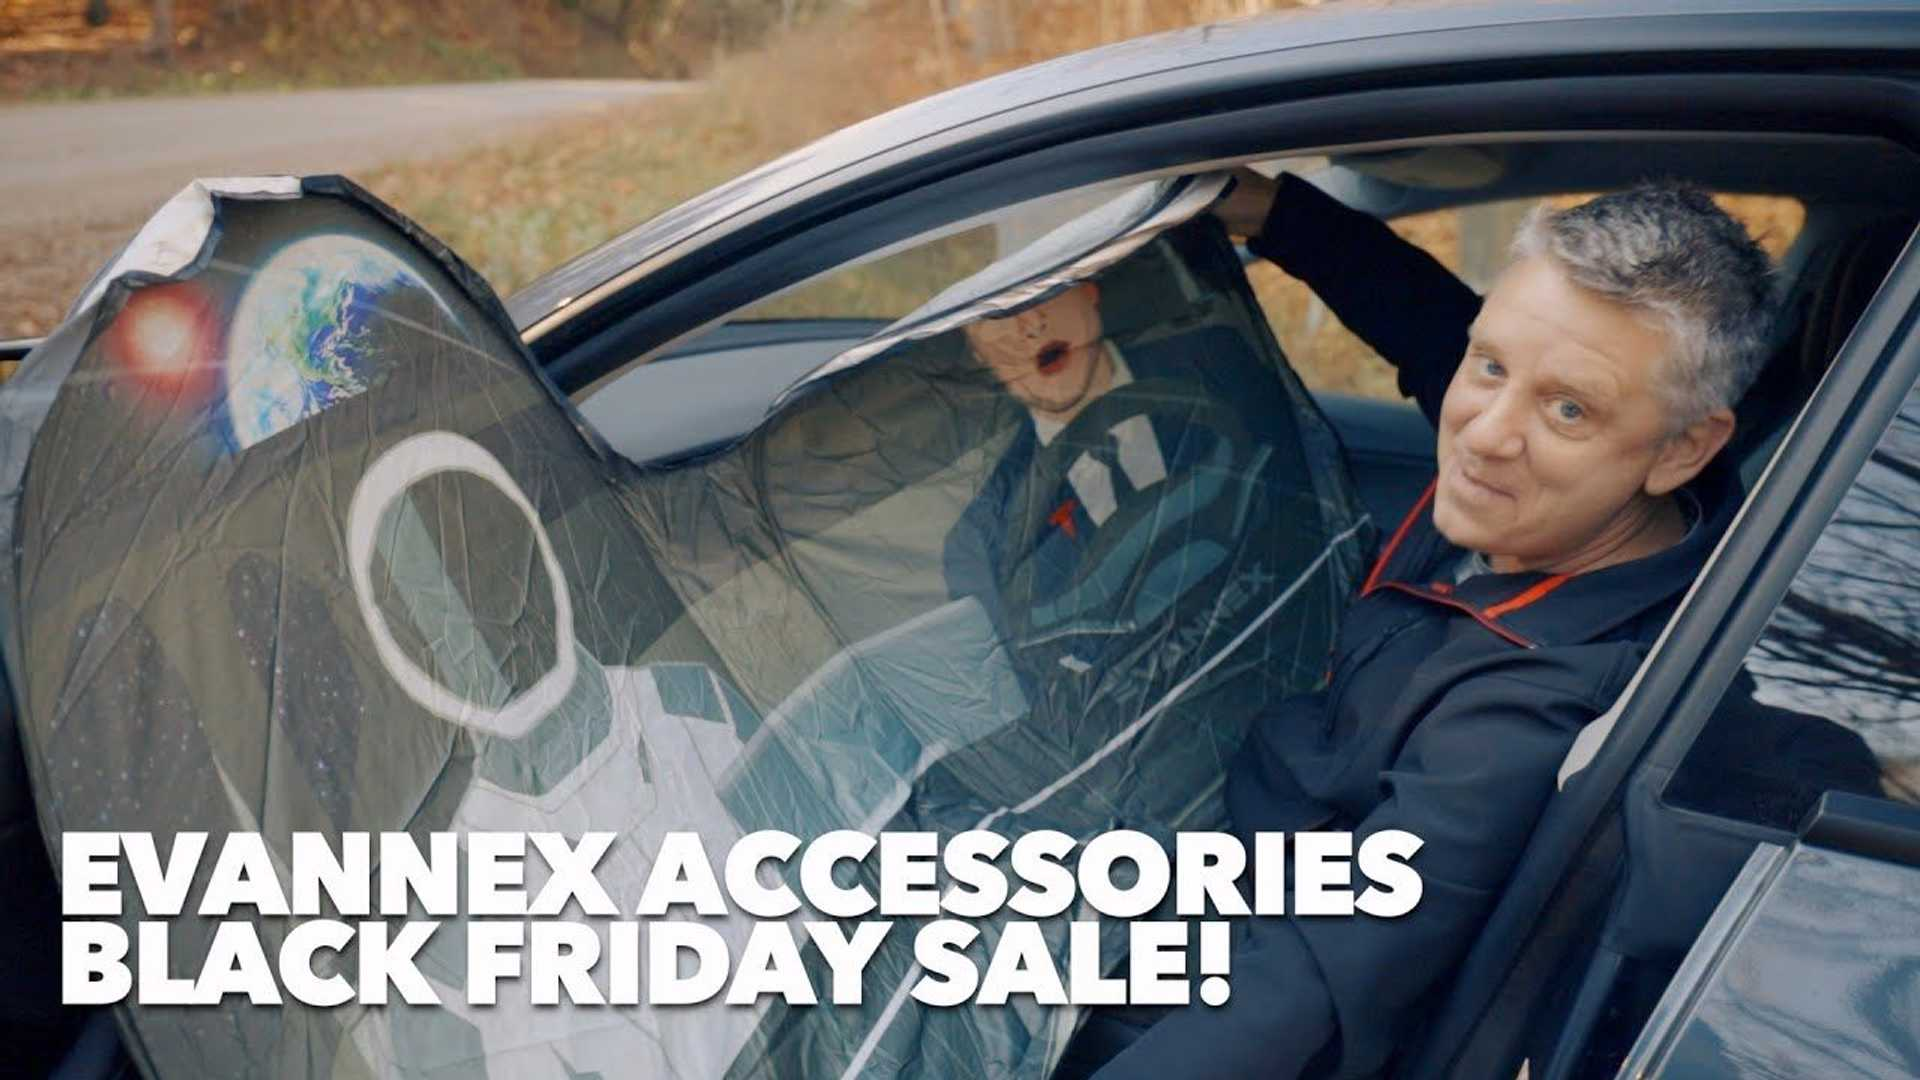 Don't Miss Out On These EVANNEX Black Friday Tesla Accessory Deals